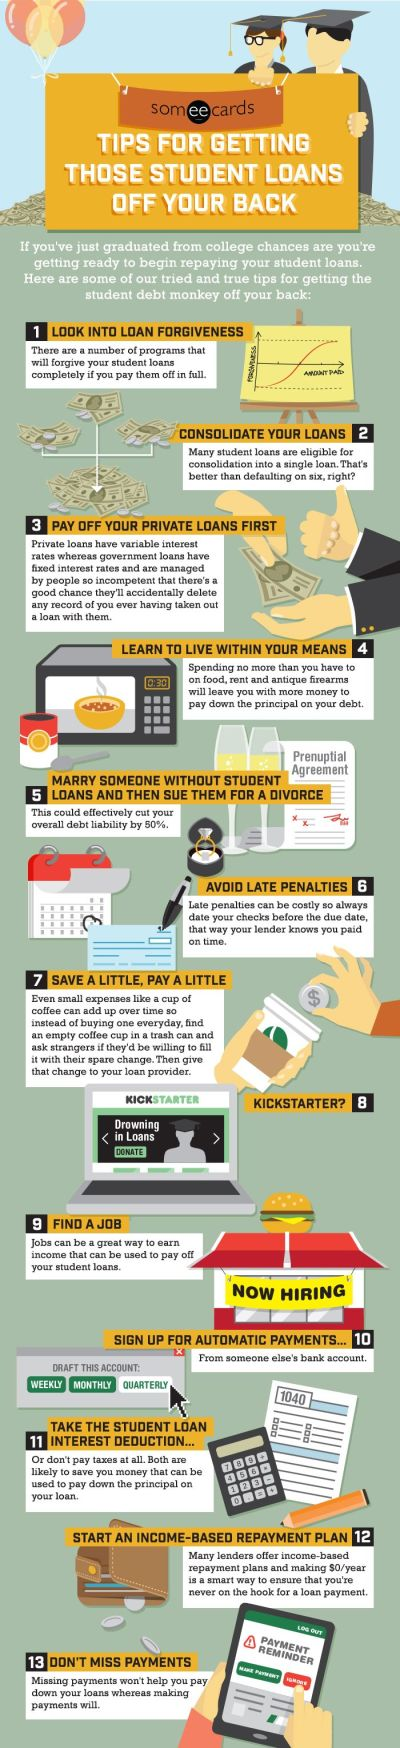 Someecards Tips For Getting Those Student Loans Off Your Back | me | Pinterest | Student loans ...